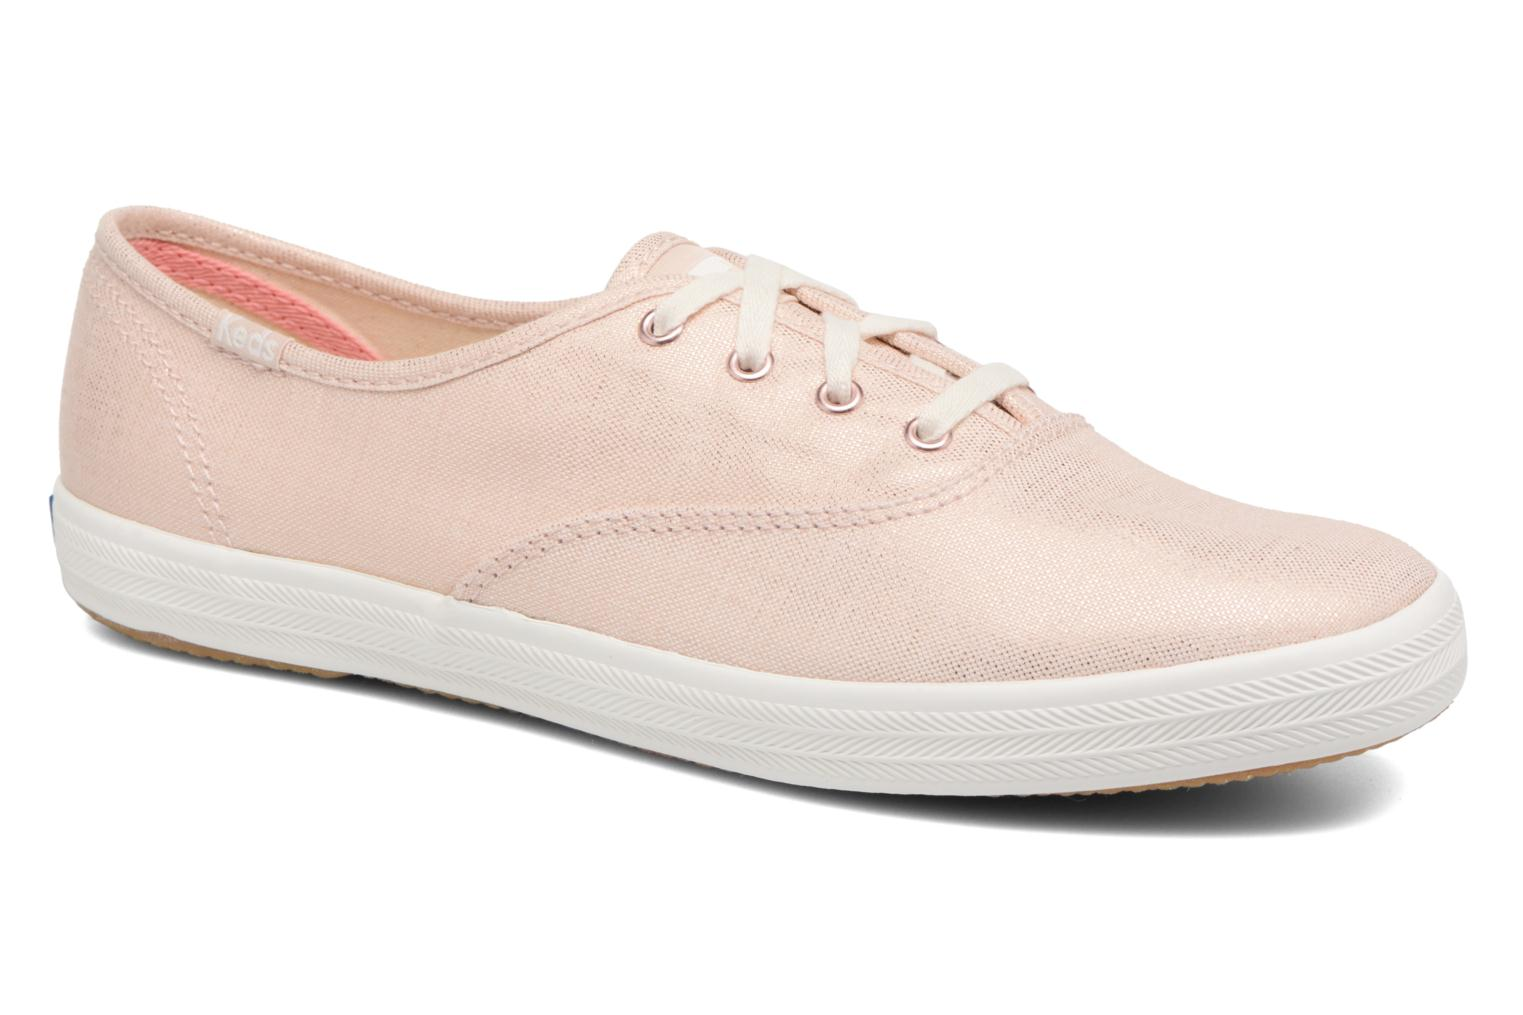 29b559cf755 Keds Champion Rose gold Linen Metallic rgrvC41Sq--precede ...